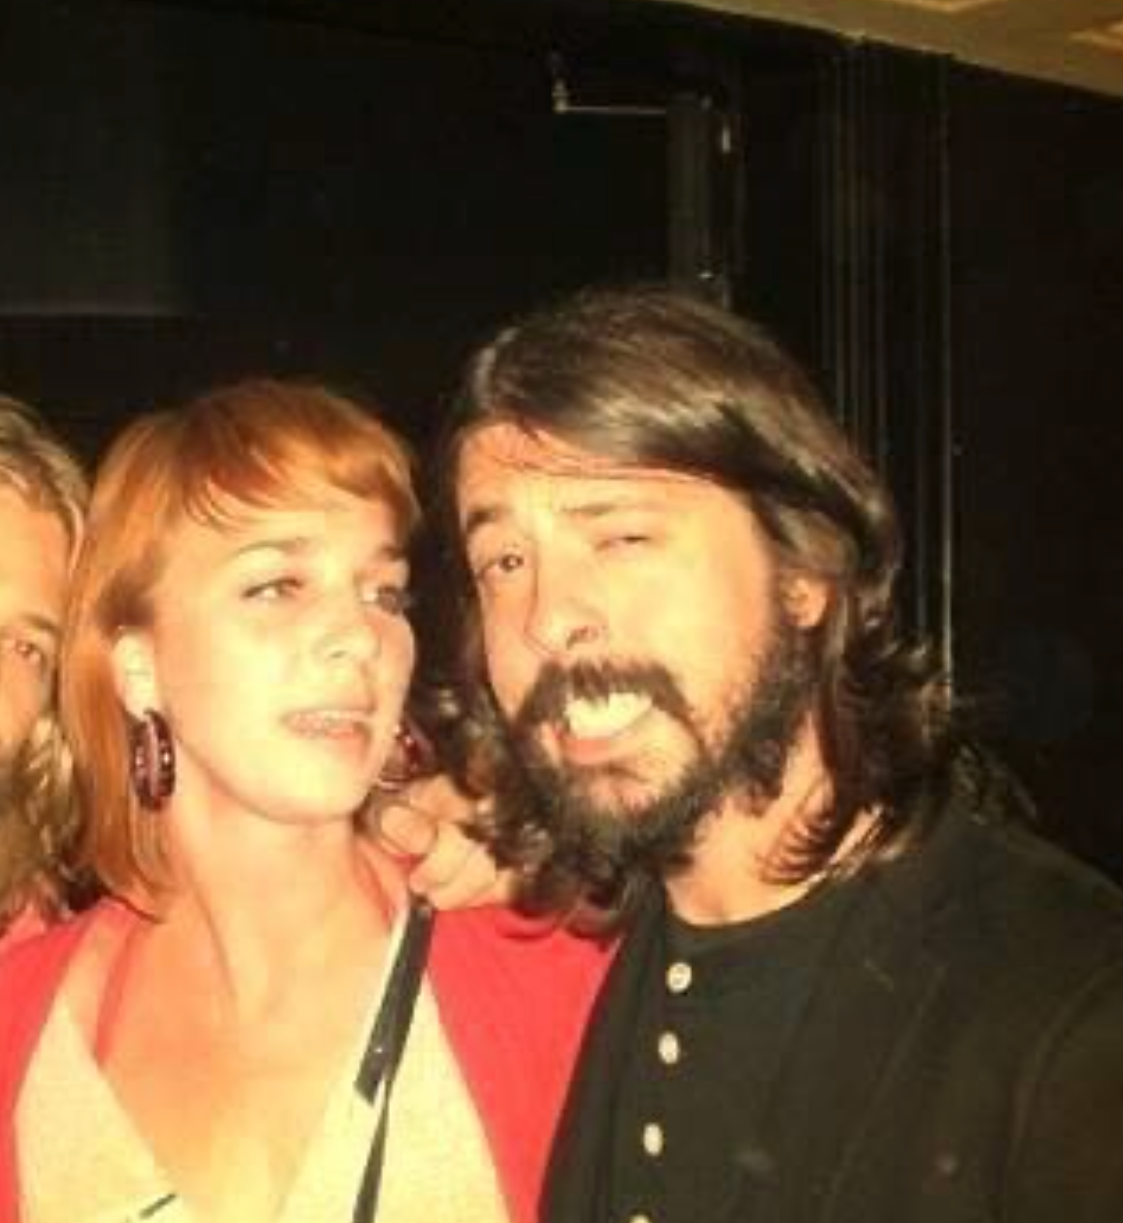 Sofie dave grohl